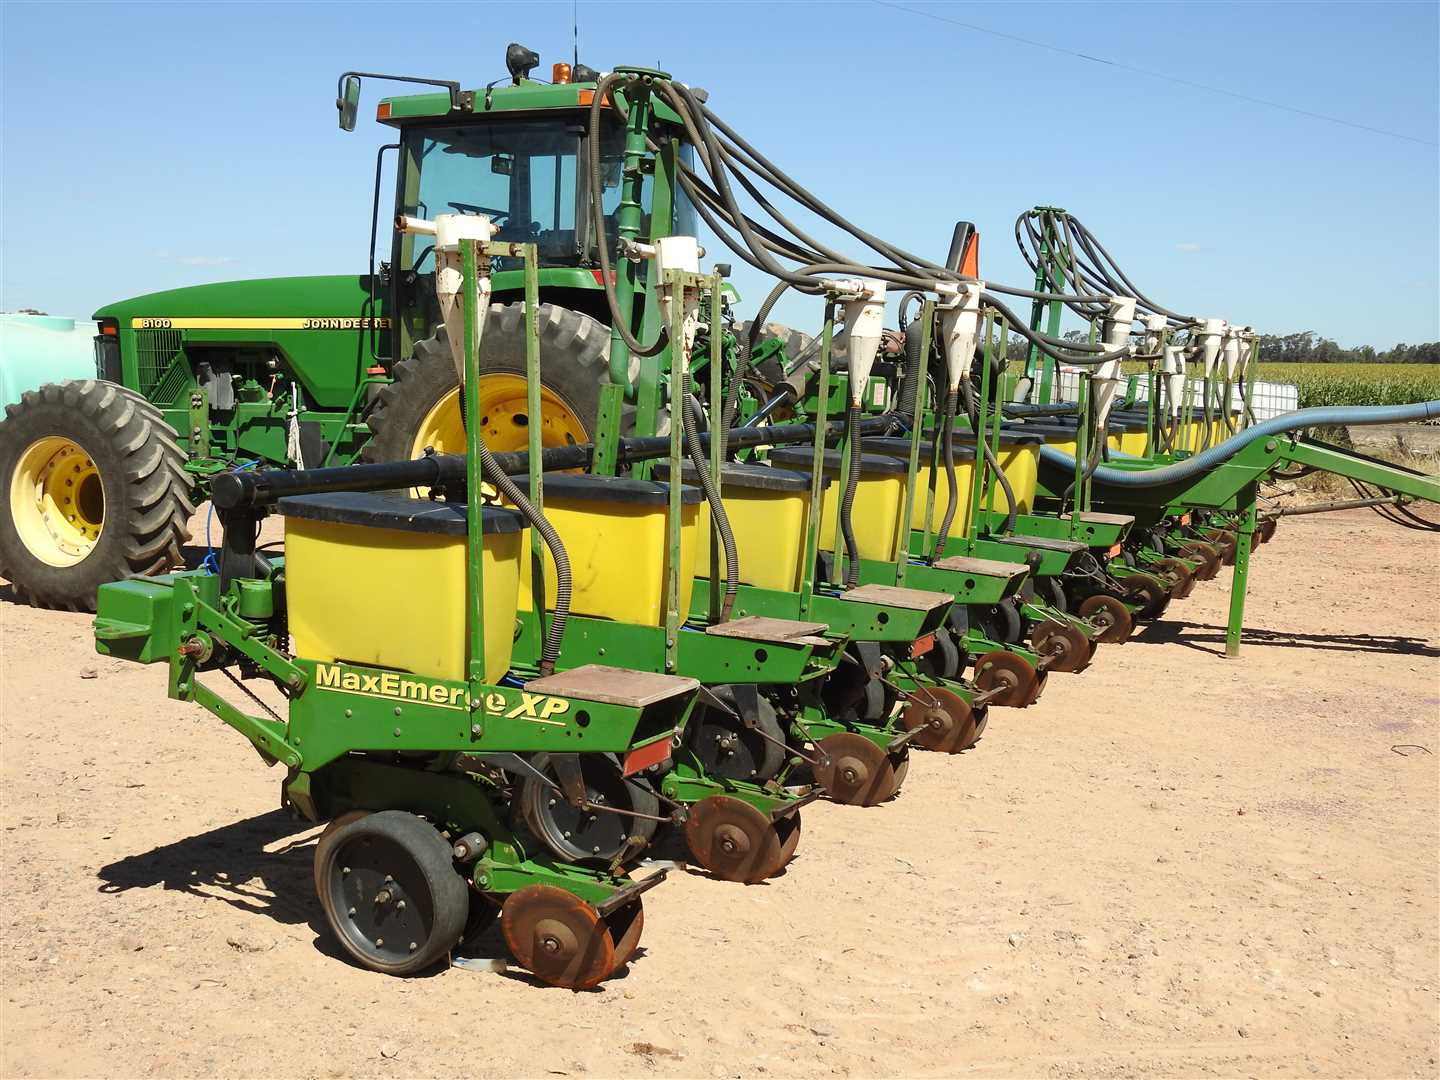 12m, 13 JD Maxi=merge planter units tpl, with air seeder attachments - trashworkers, steel press wheels.